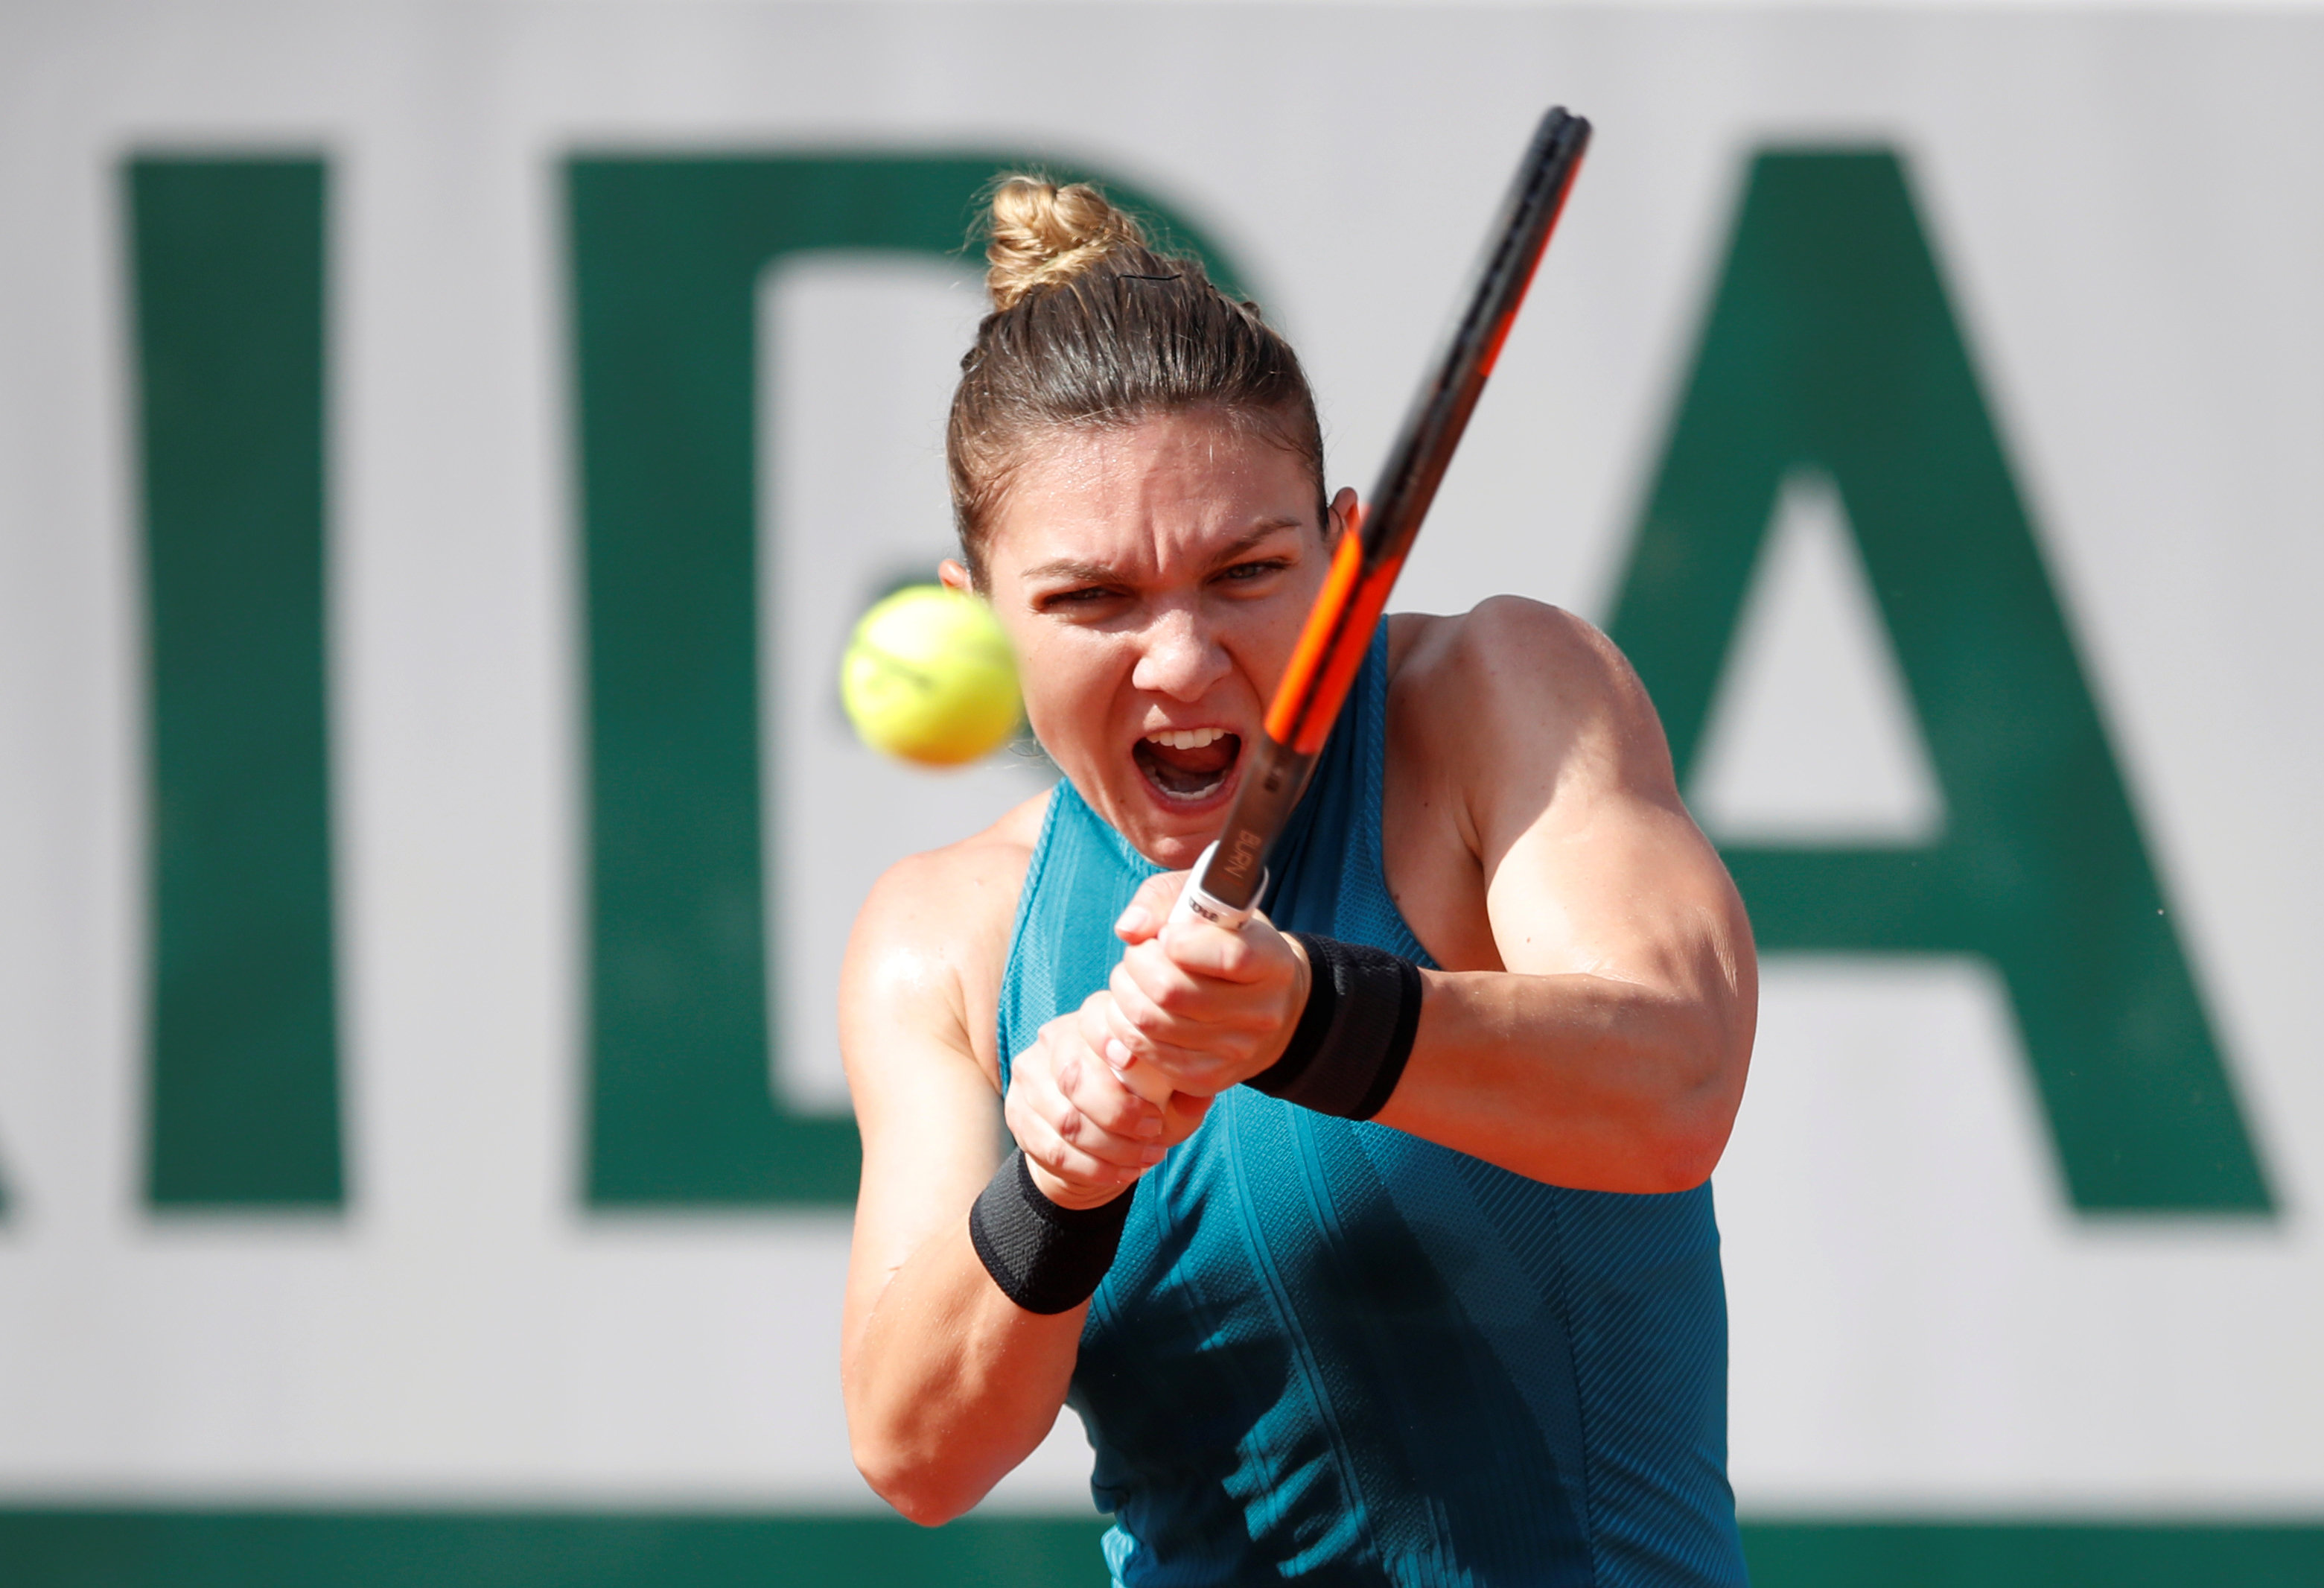 French Open: Halep subdues Petkovic after tight early tussle